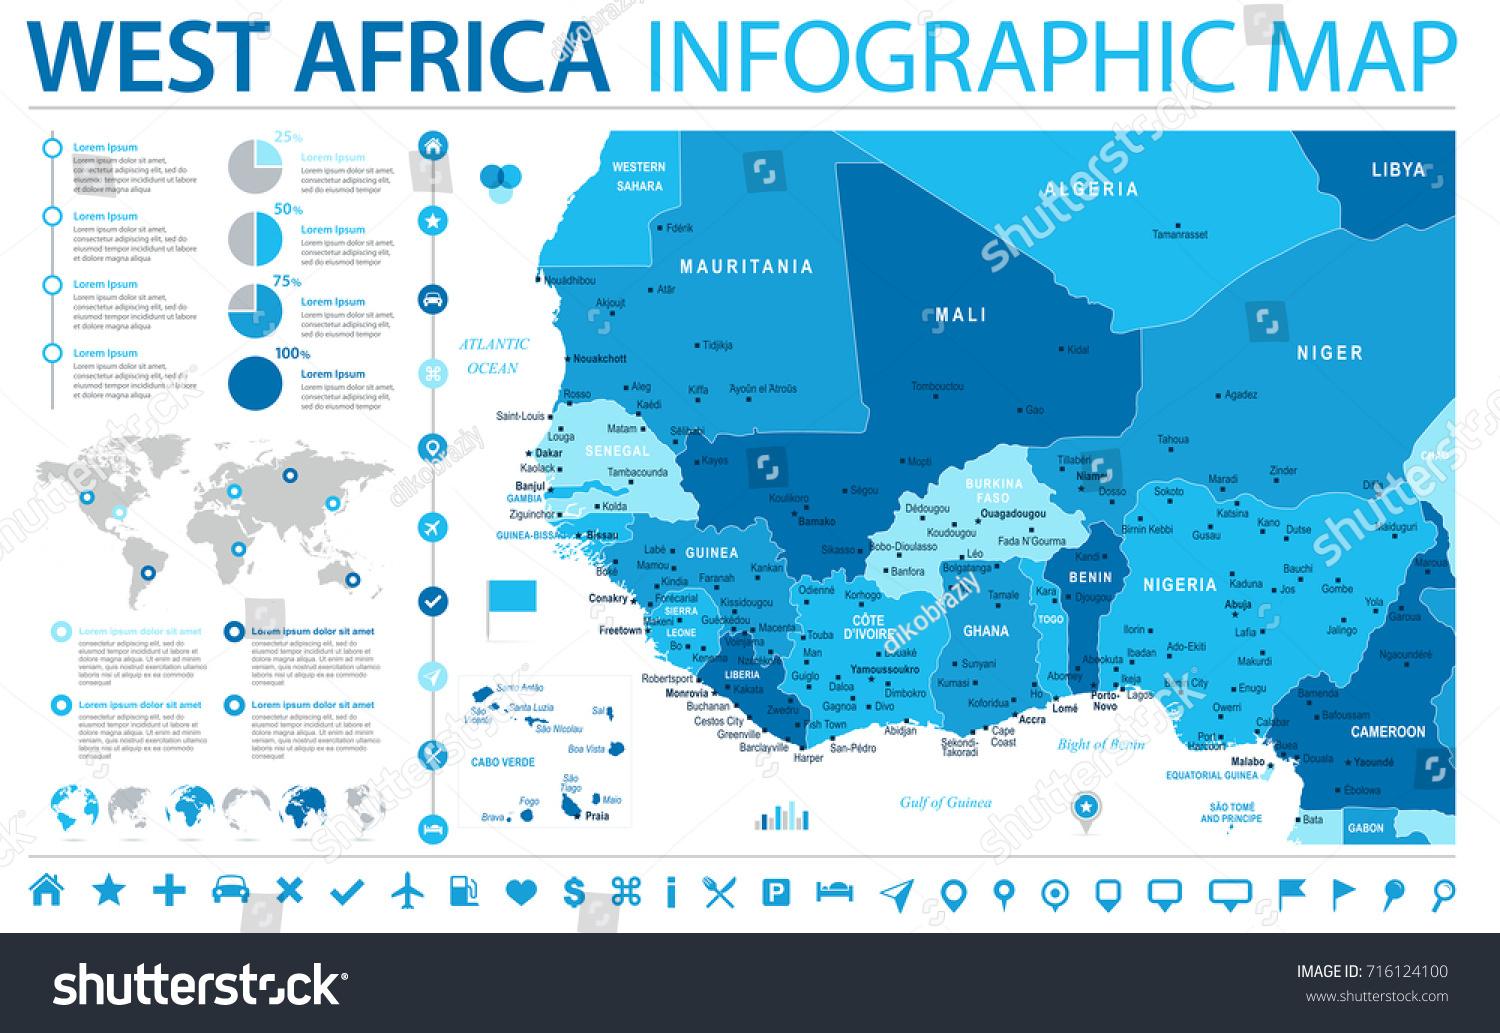 West africa map detailed info graphic stock vector hd royalty free west africa map detailed info graphic vector illustration ccuart Images